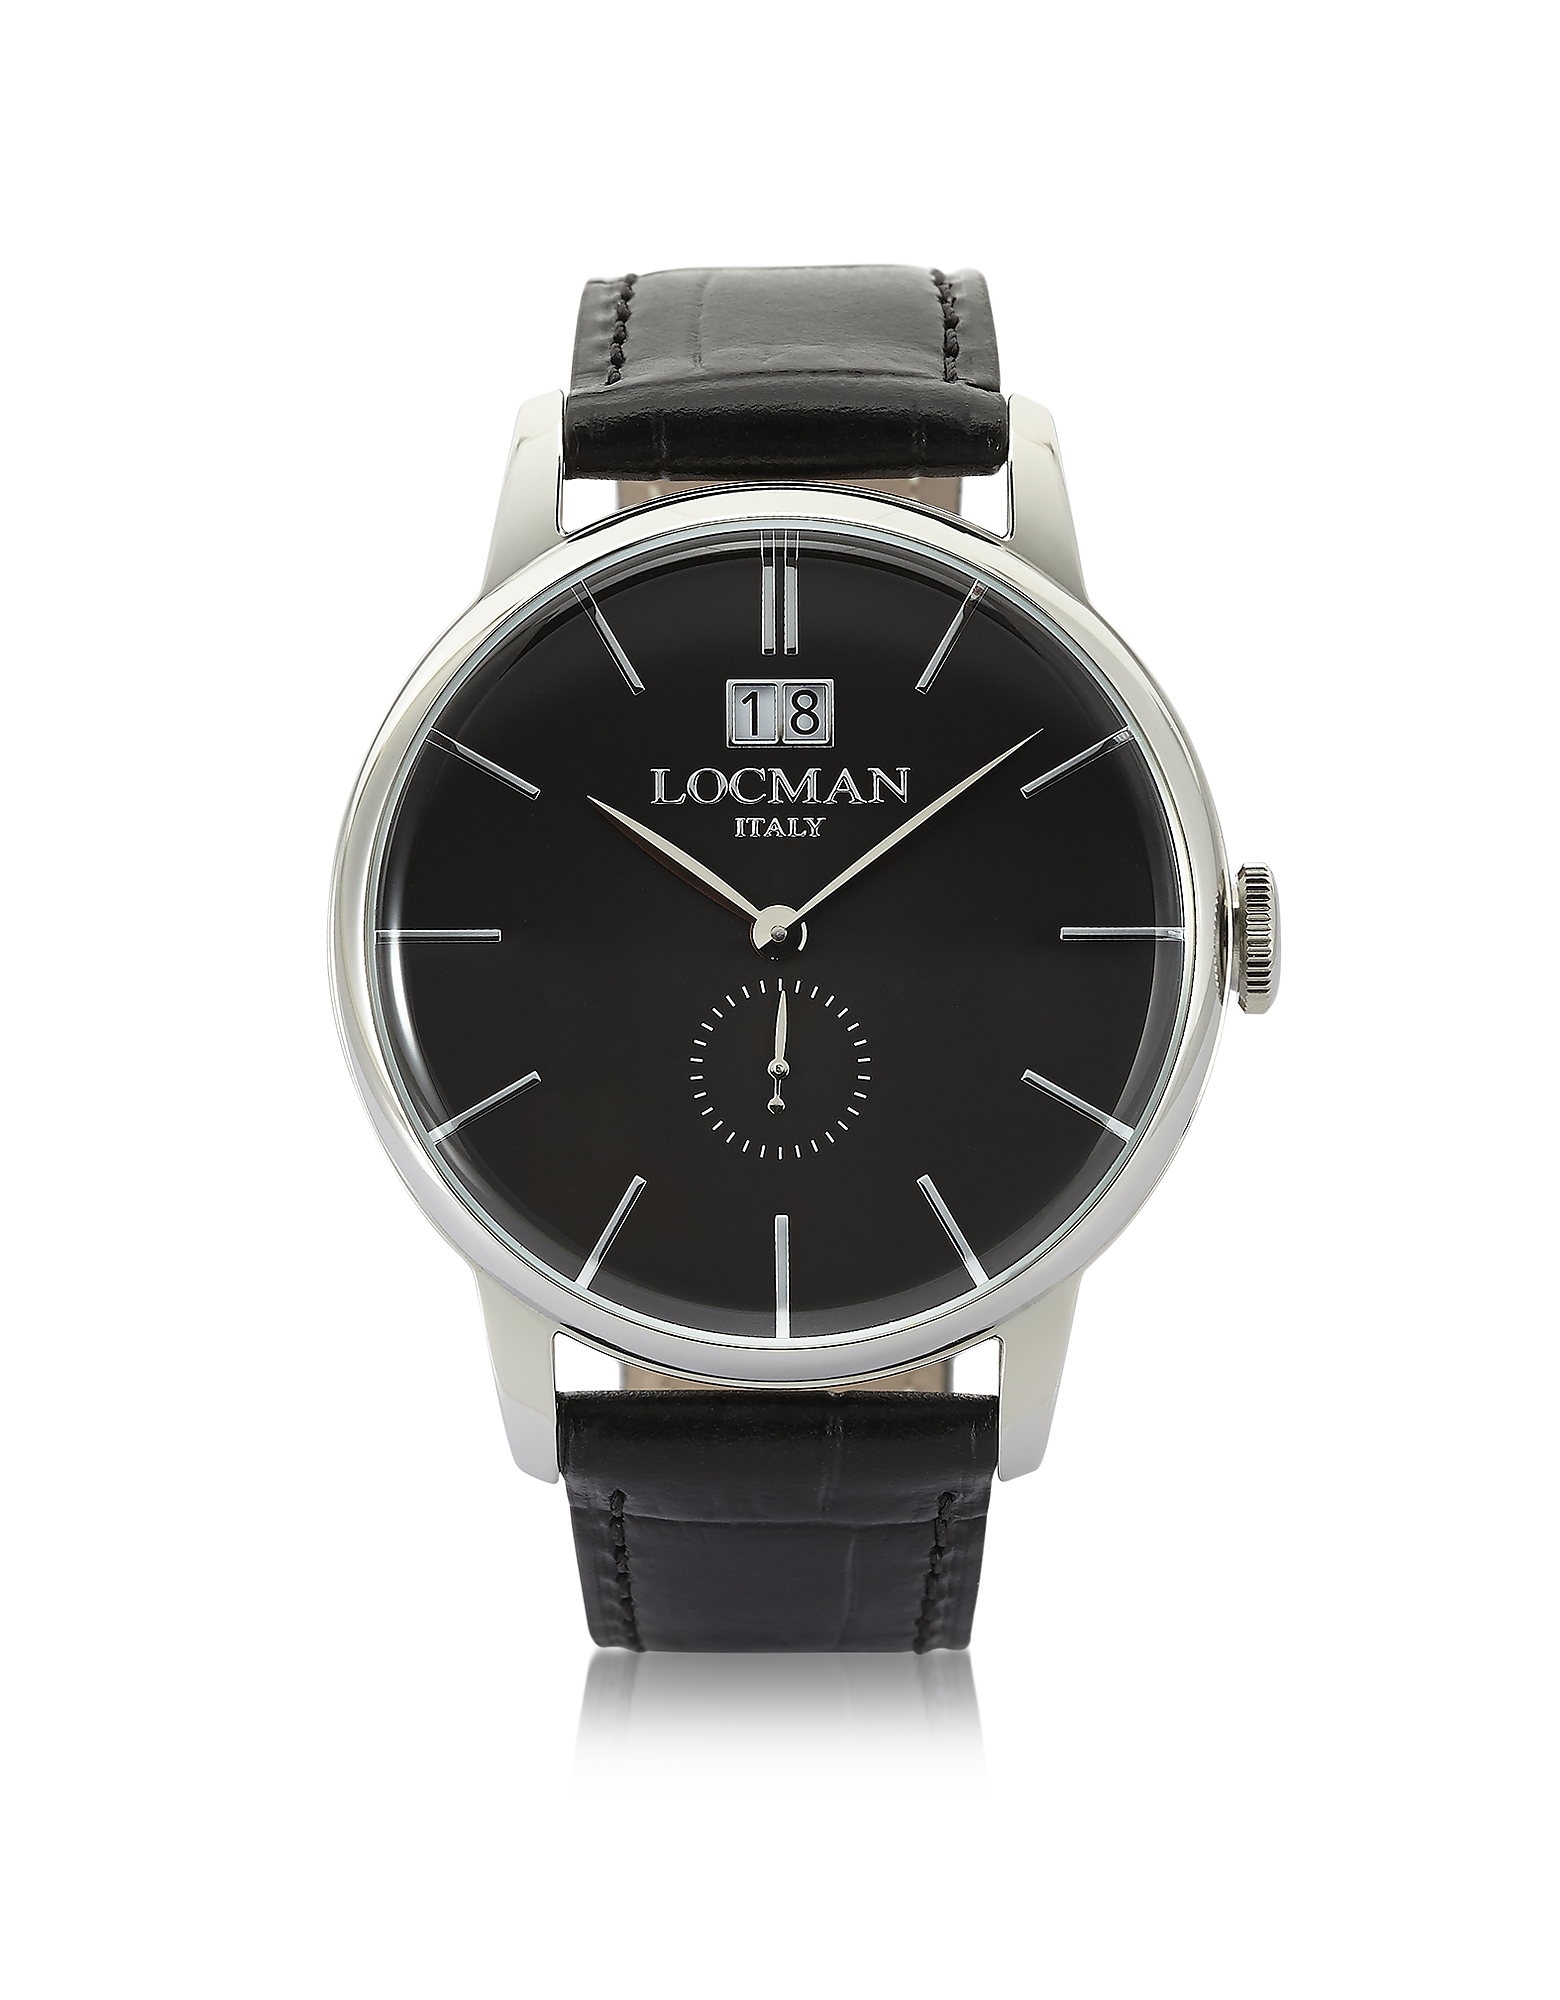 Locman Men's Watches, 1960 Silver Stainless Steel Men's Watch w/ Black Croco Embossed Leather Strap